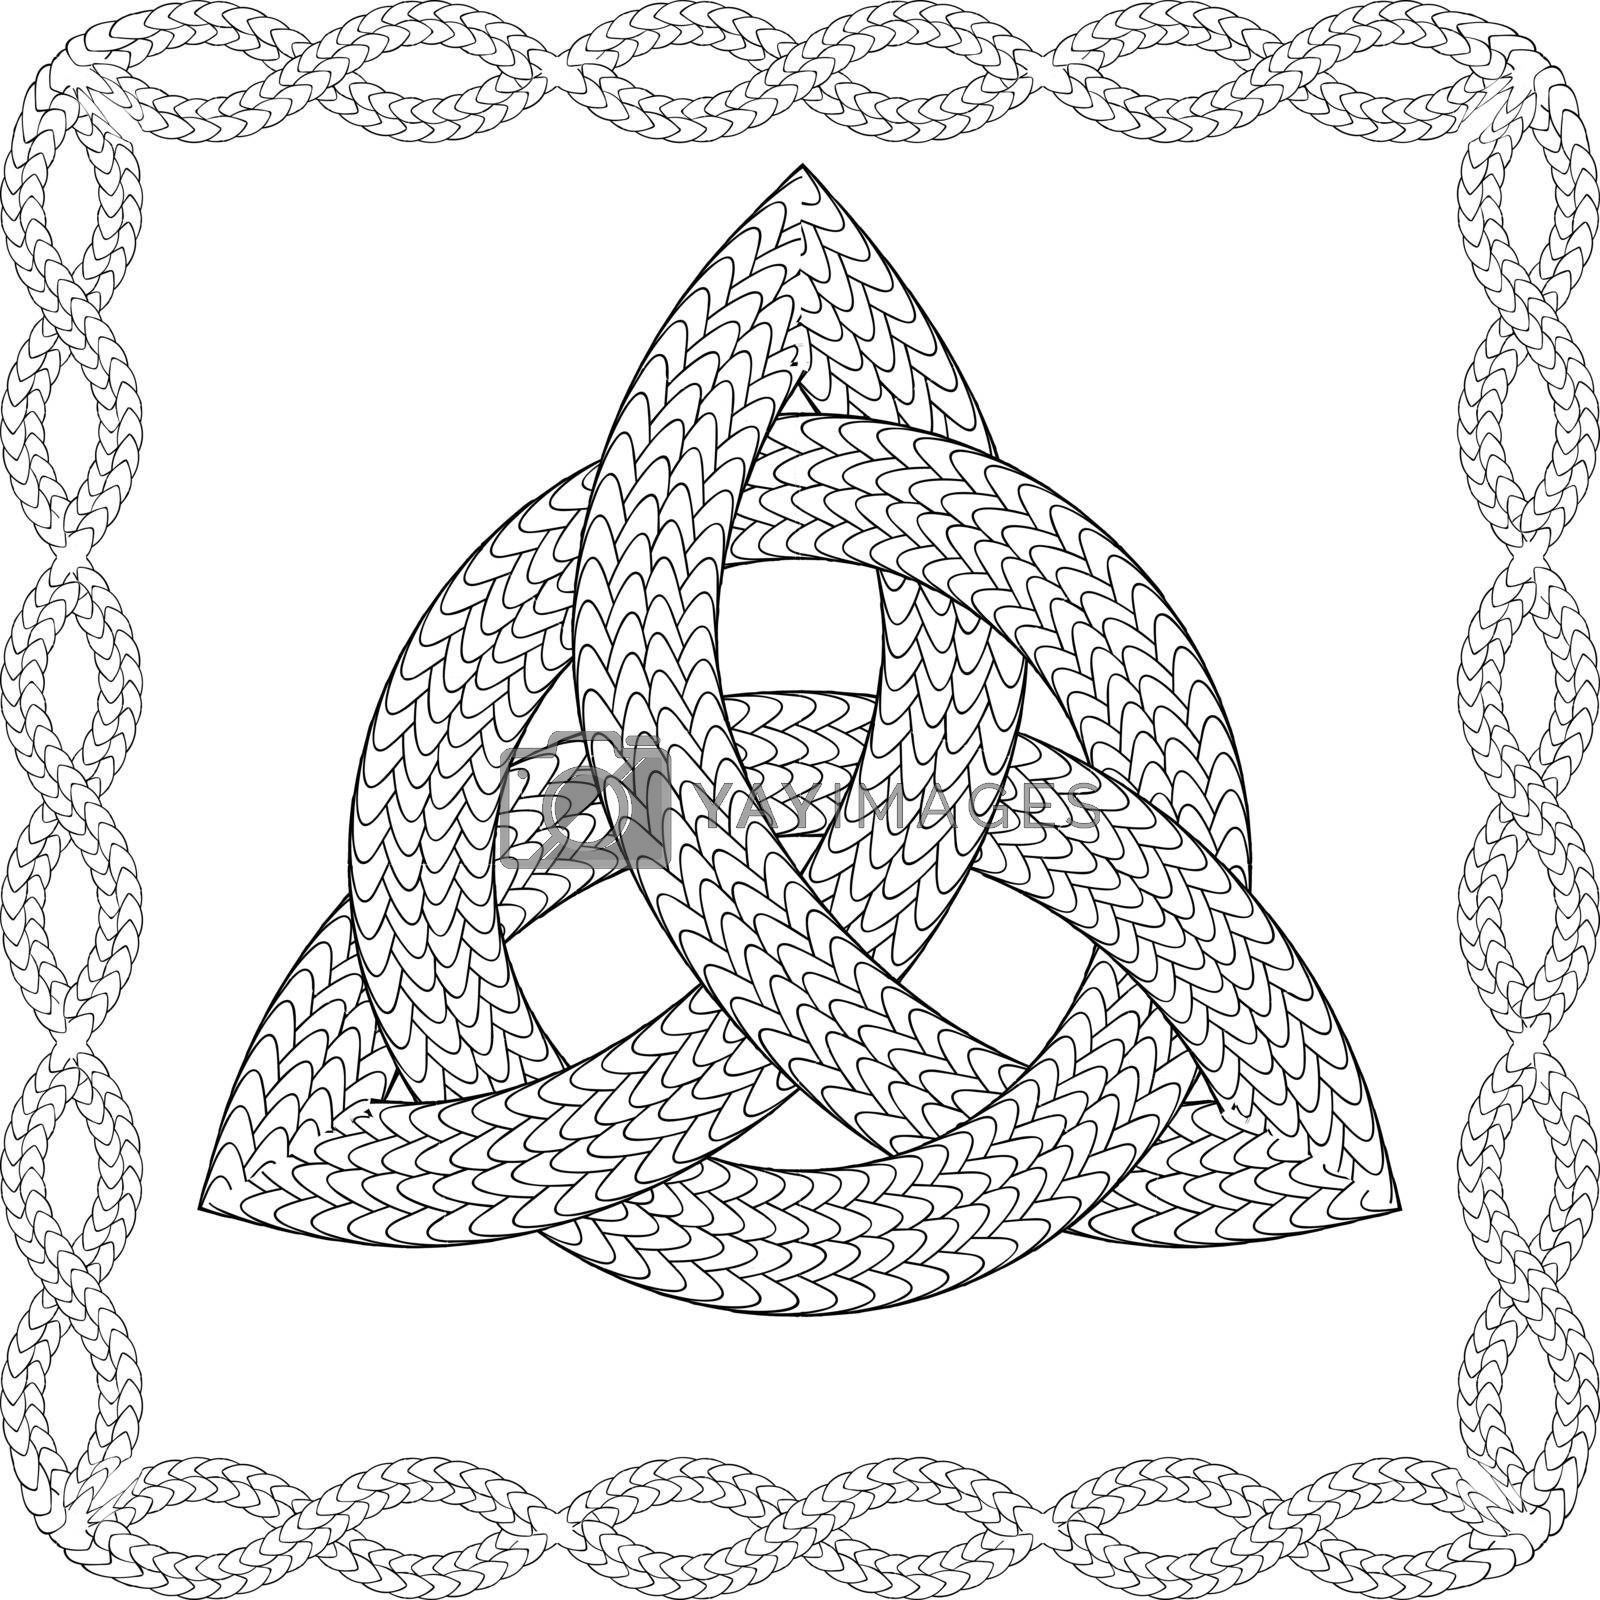 Black and white rope entwined celtic pagan symbol triquetra in knotted frame